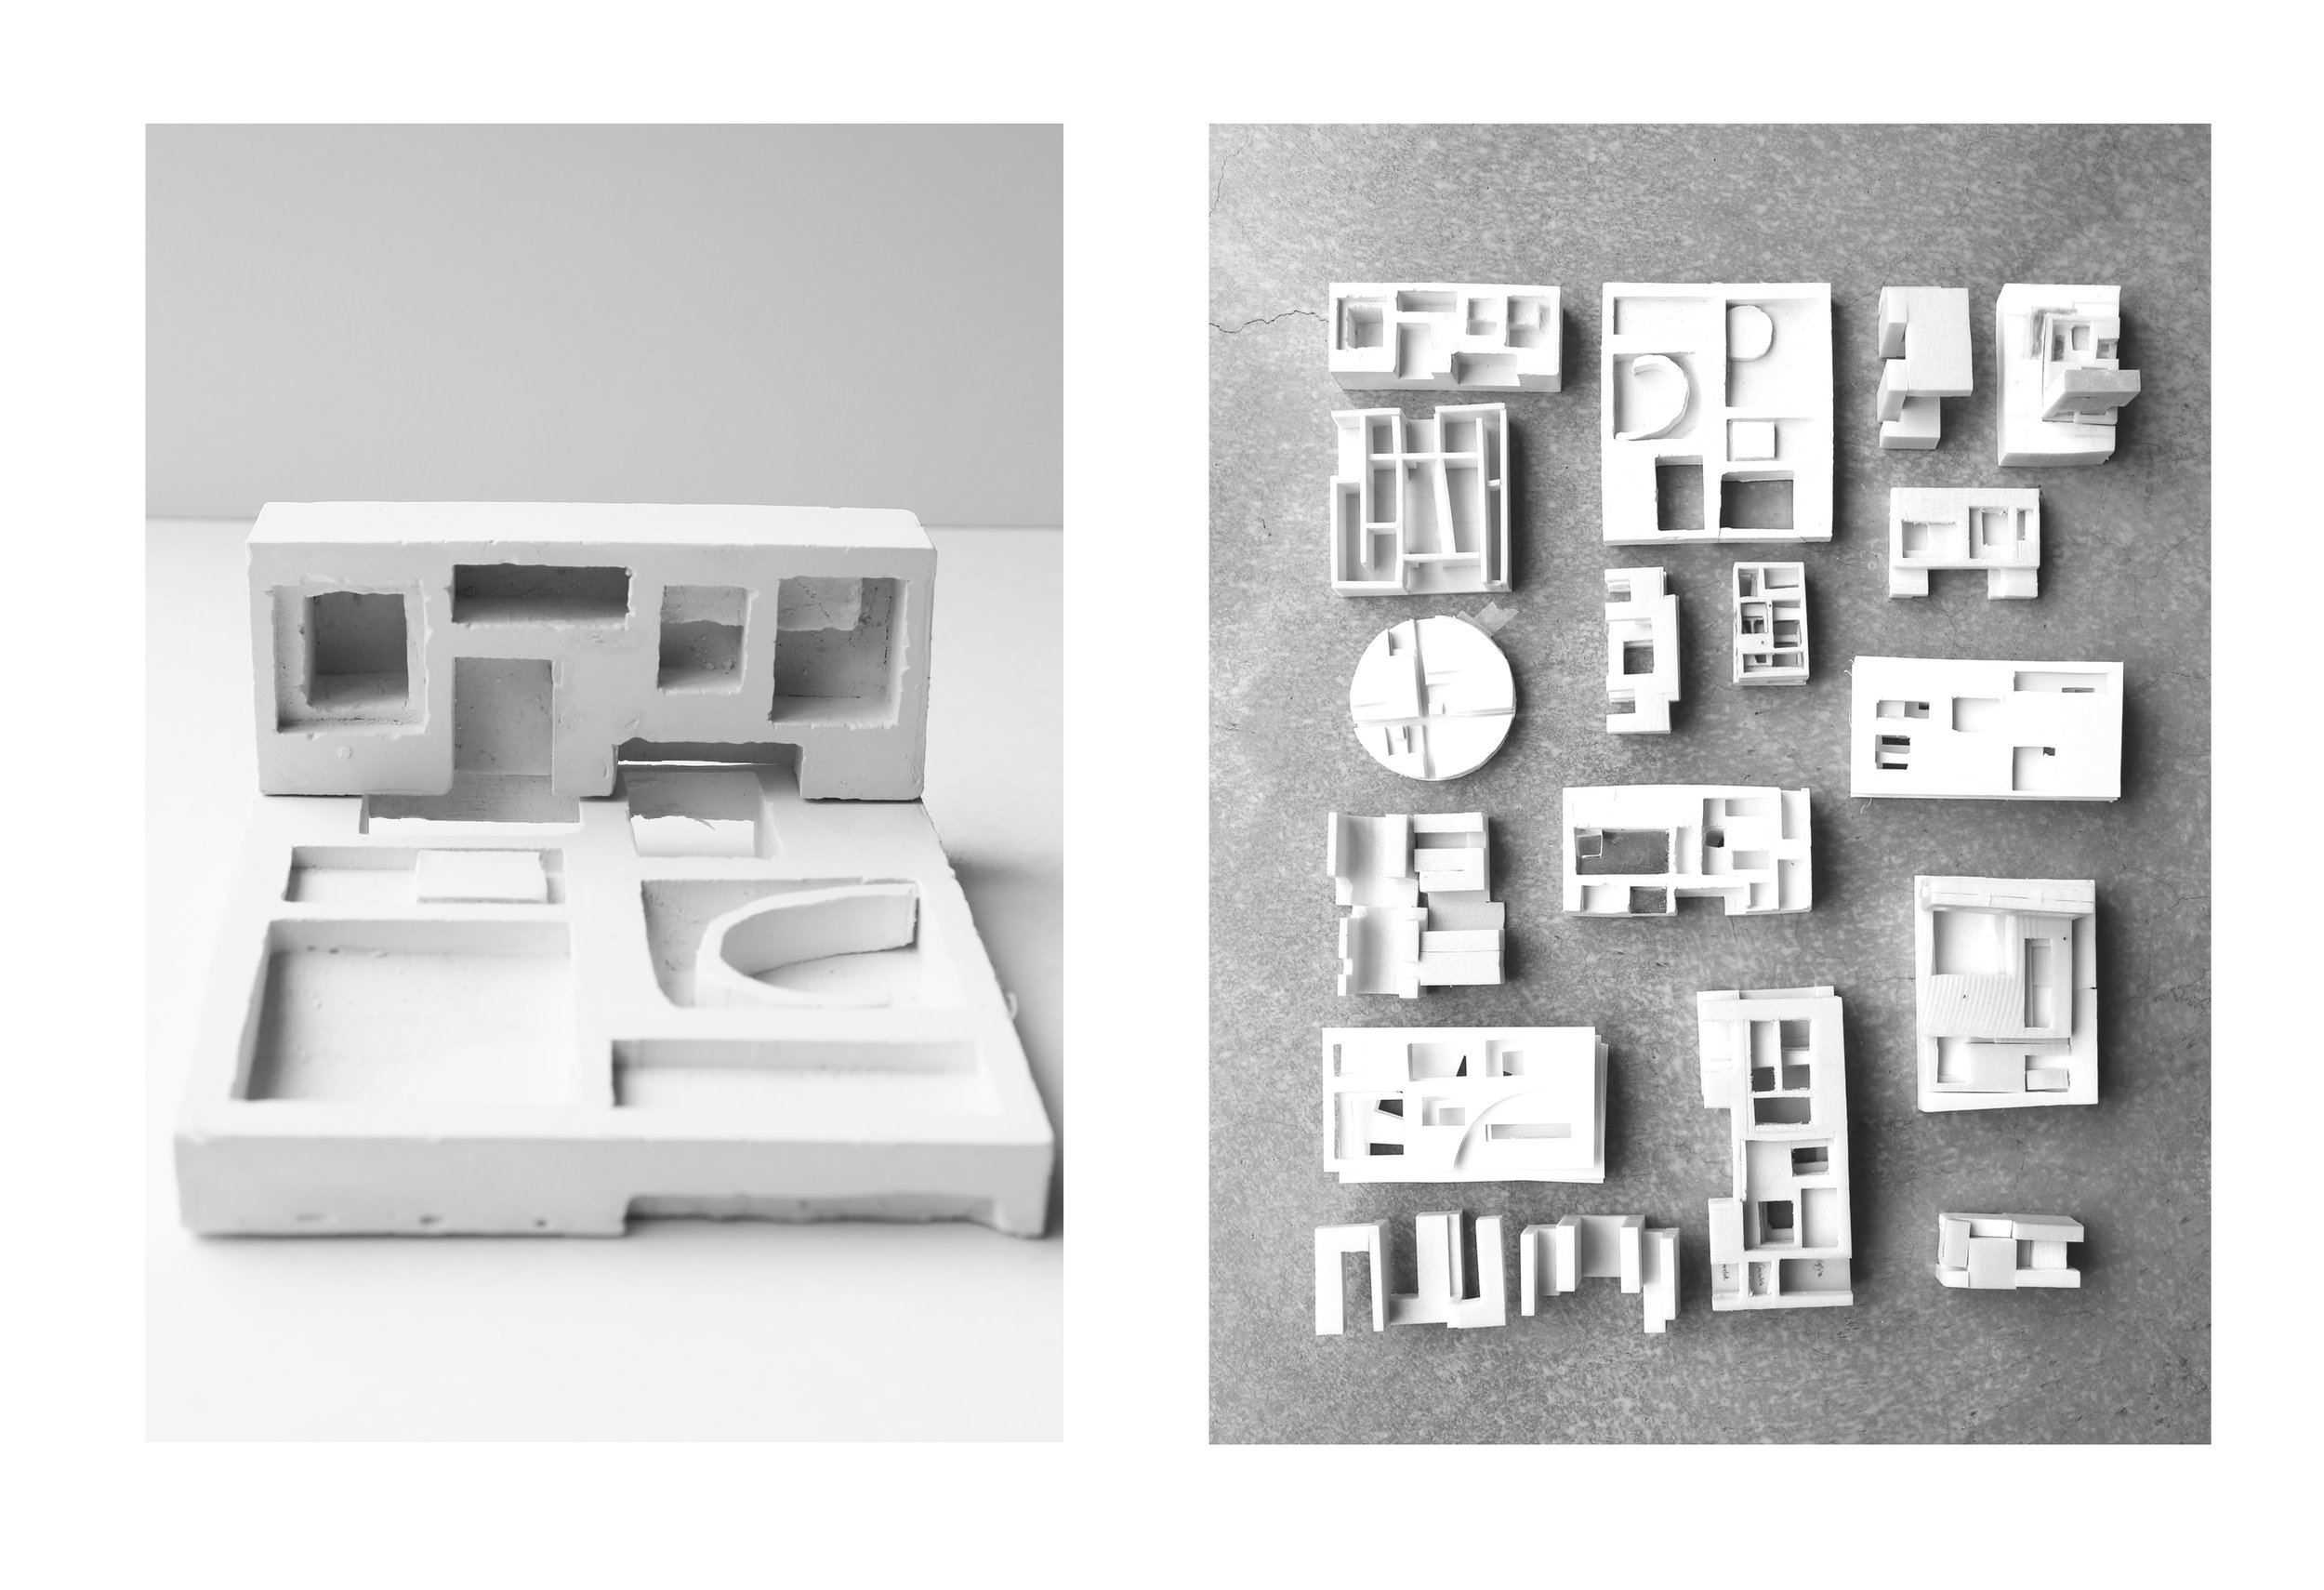 Thanh's studio project models